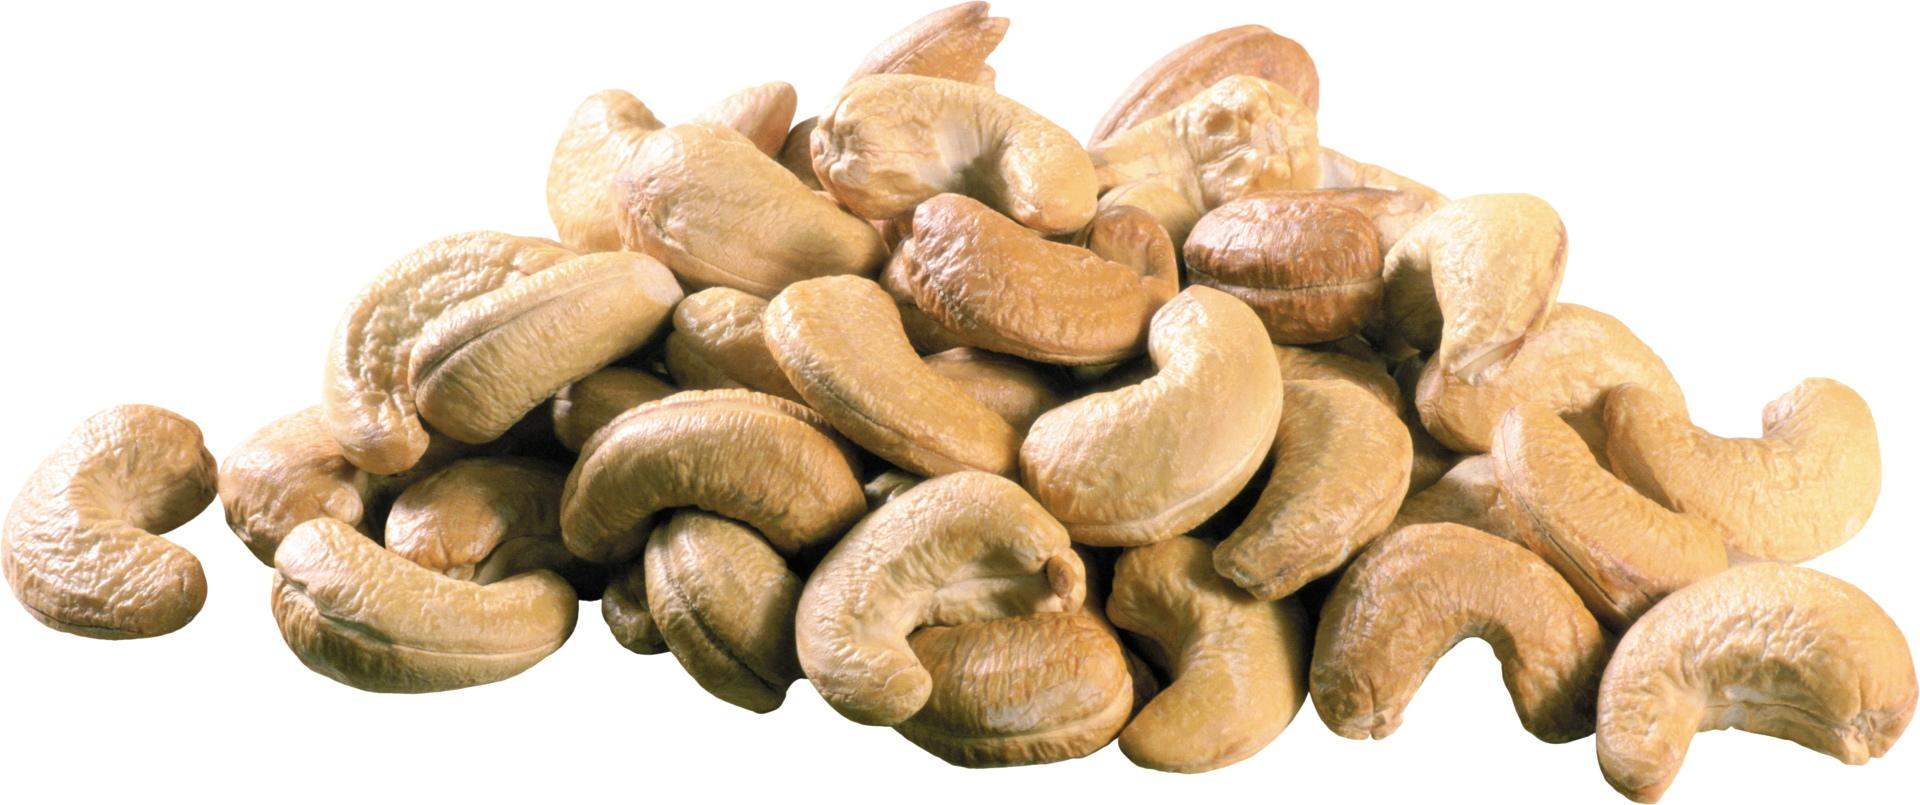 Cashew wallpapers HD quality